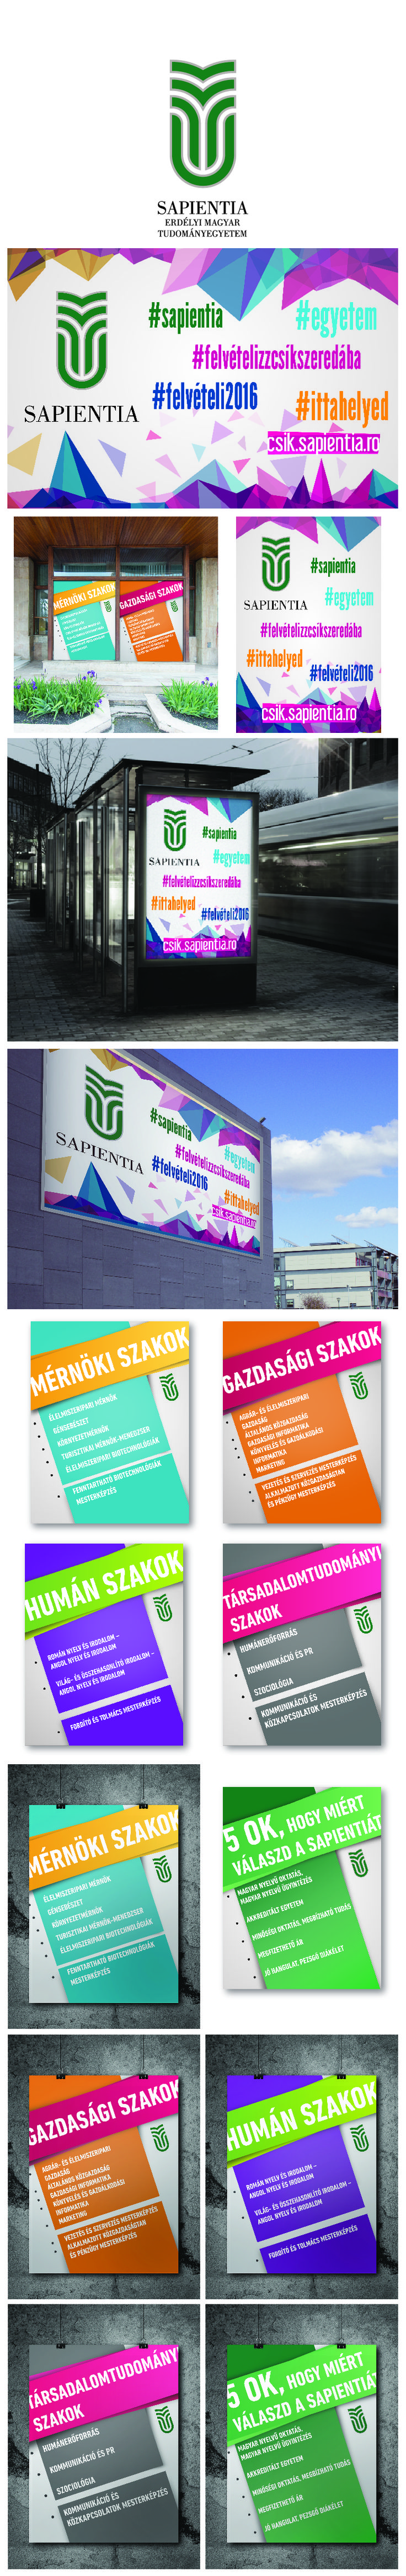 Campaign design for Sapientia Hungarian University of Transylvania